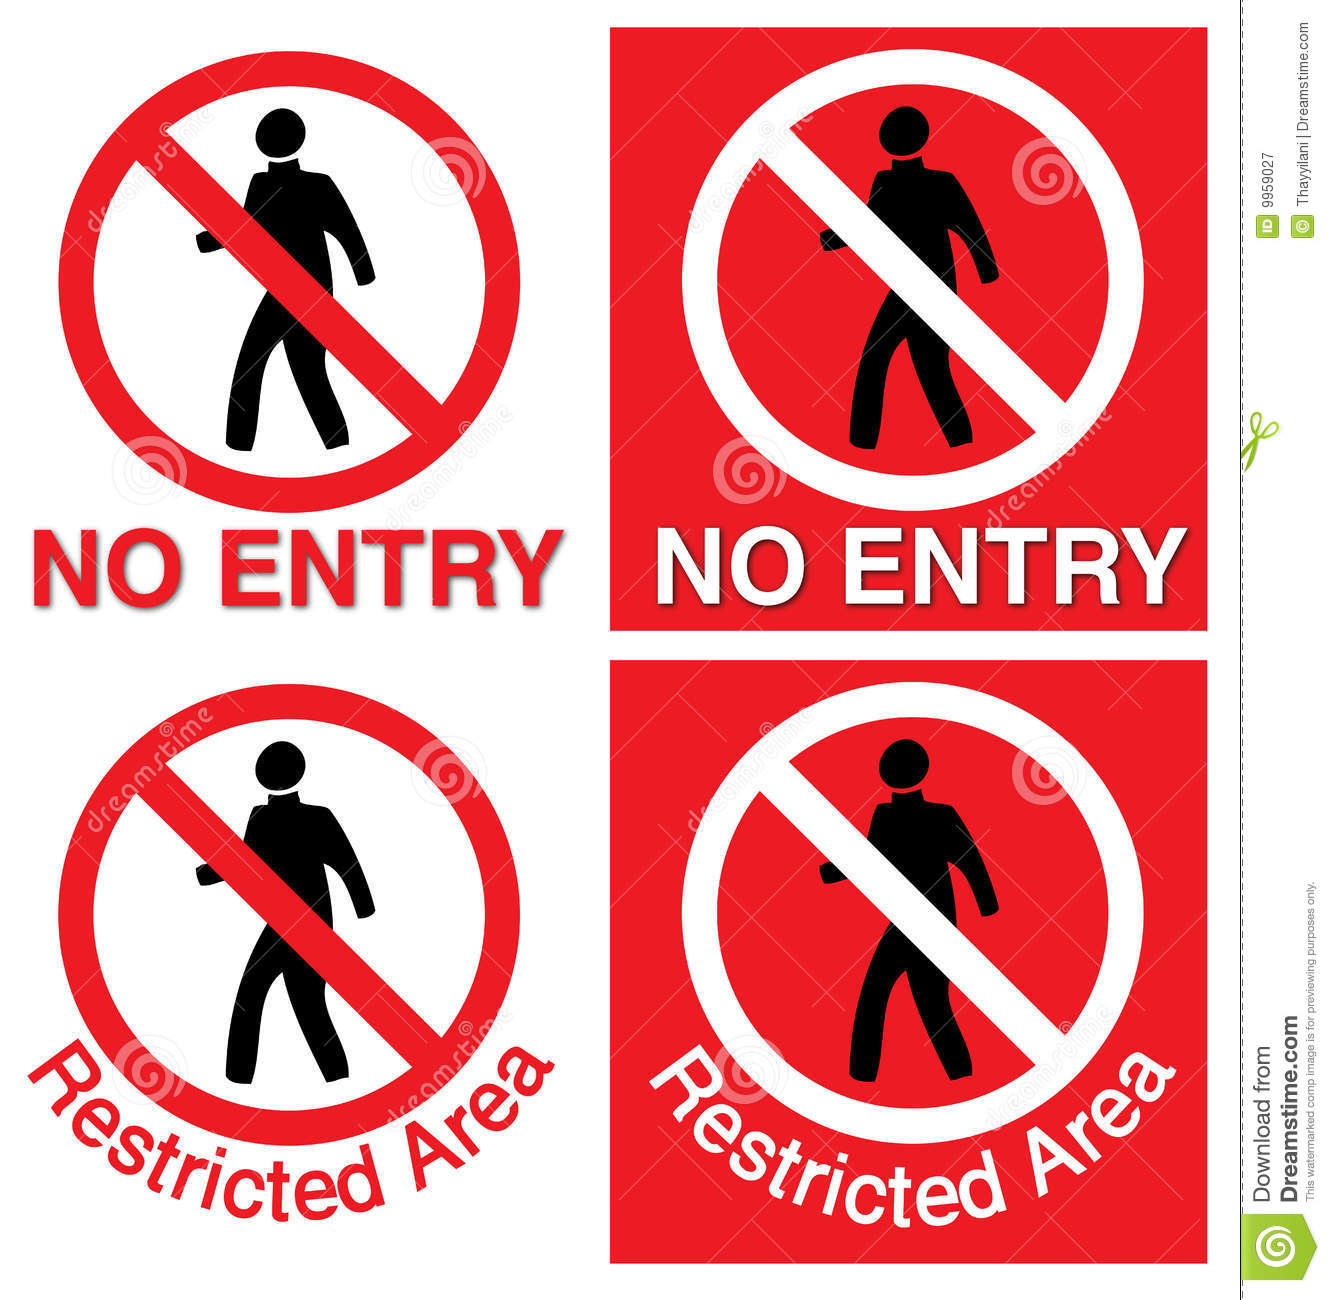 No Entry & Restricted Area Royalty Free Stock Photography.